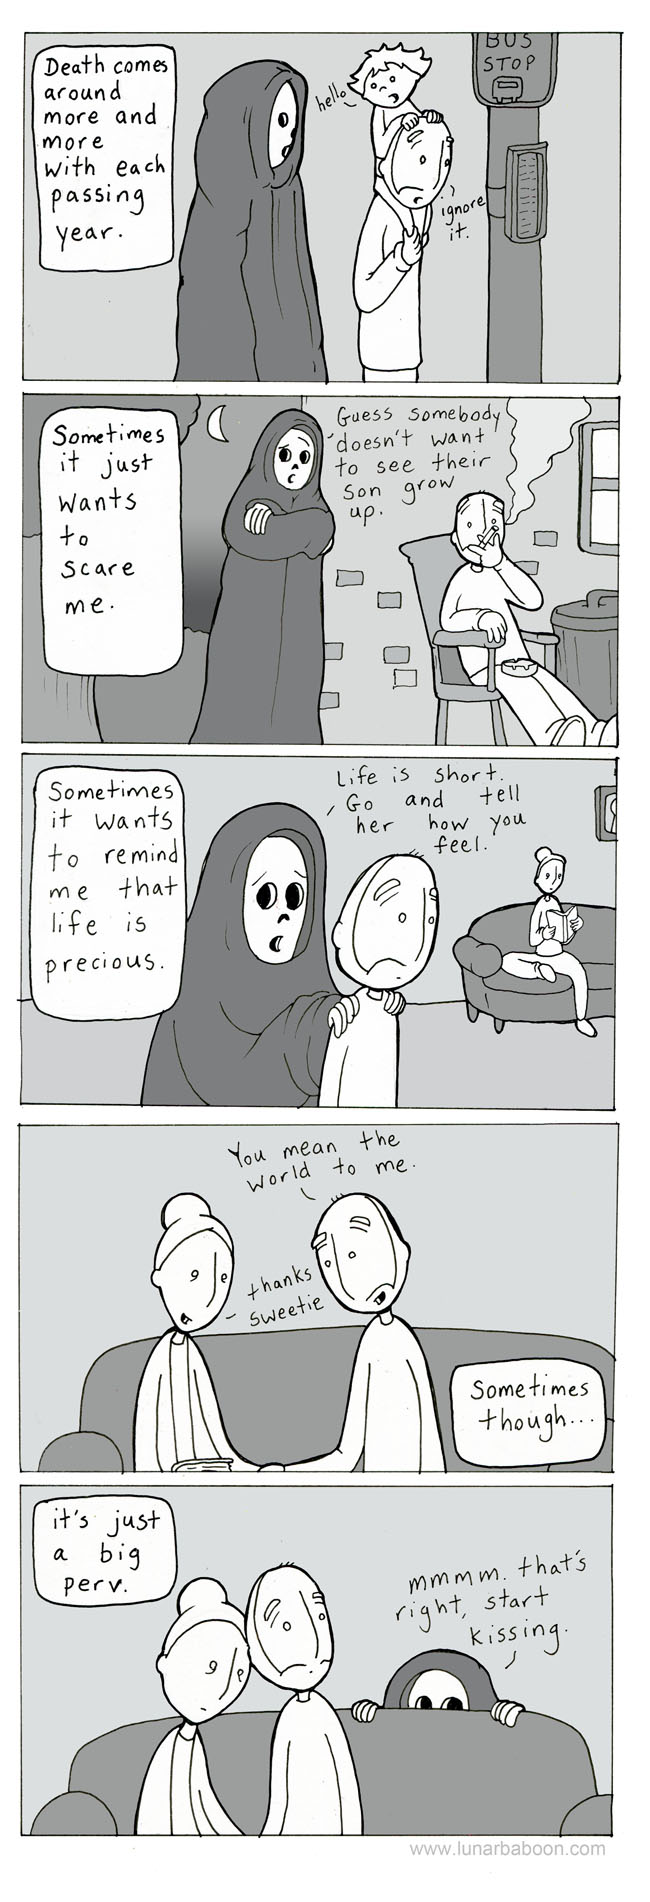 funny-picture-lunarbaboon-comics-death